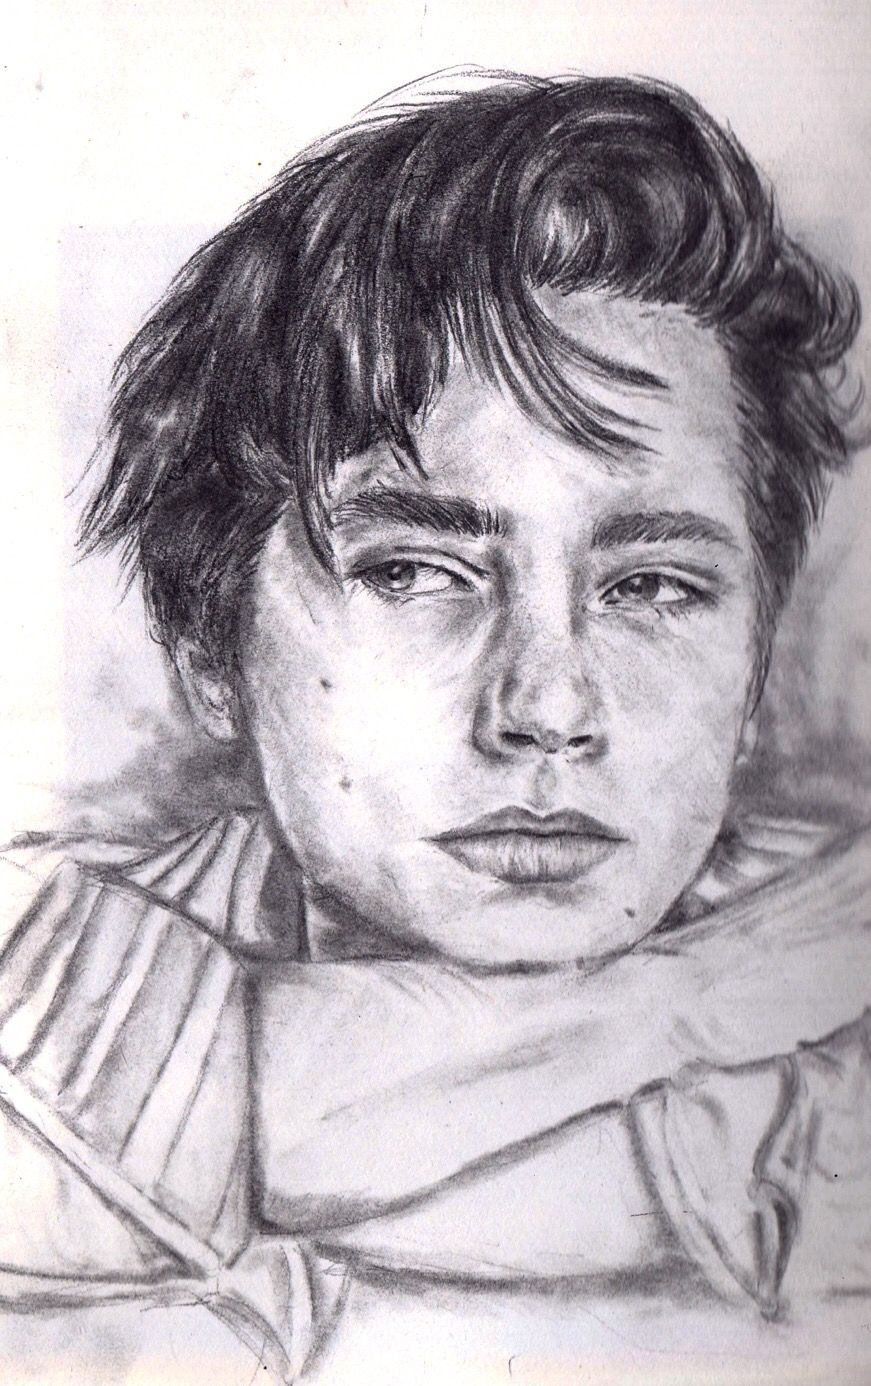 Cole sprouse pencil drawing